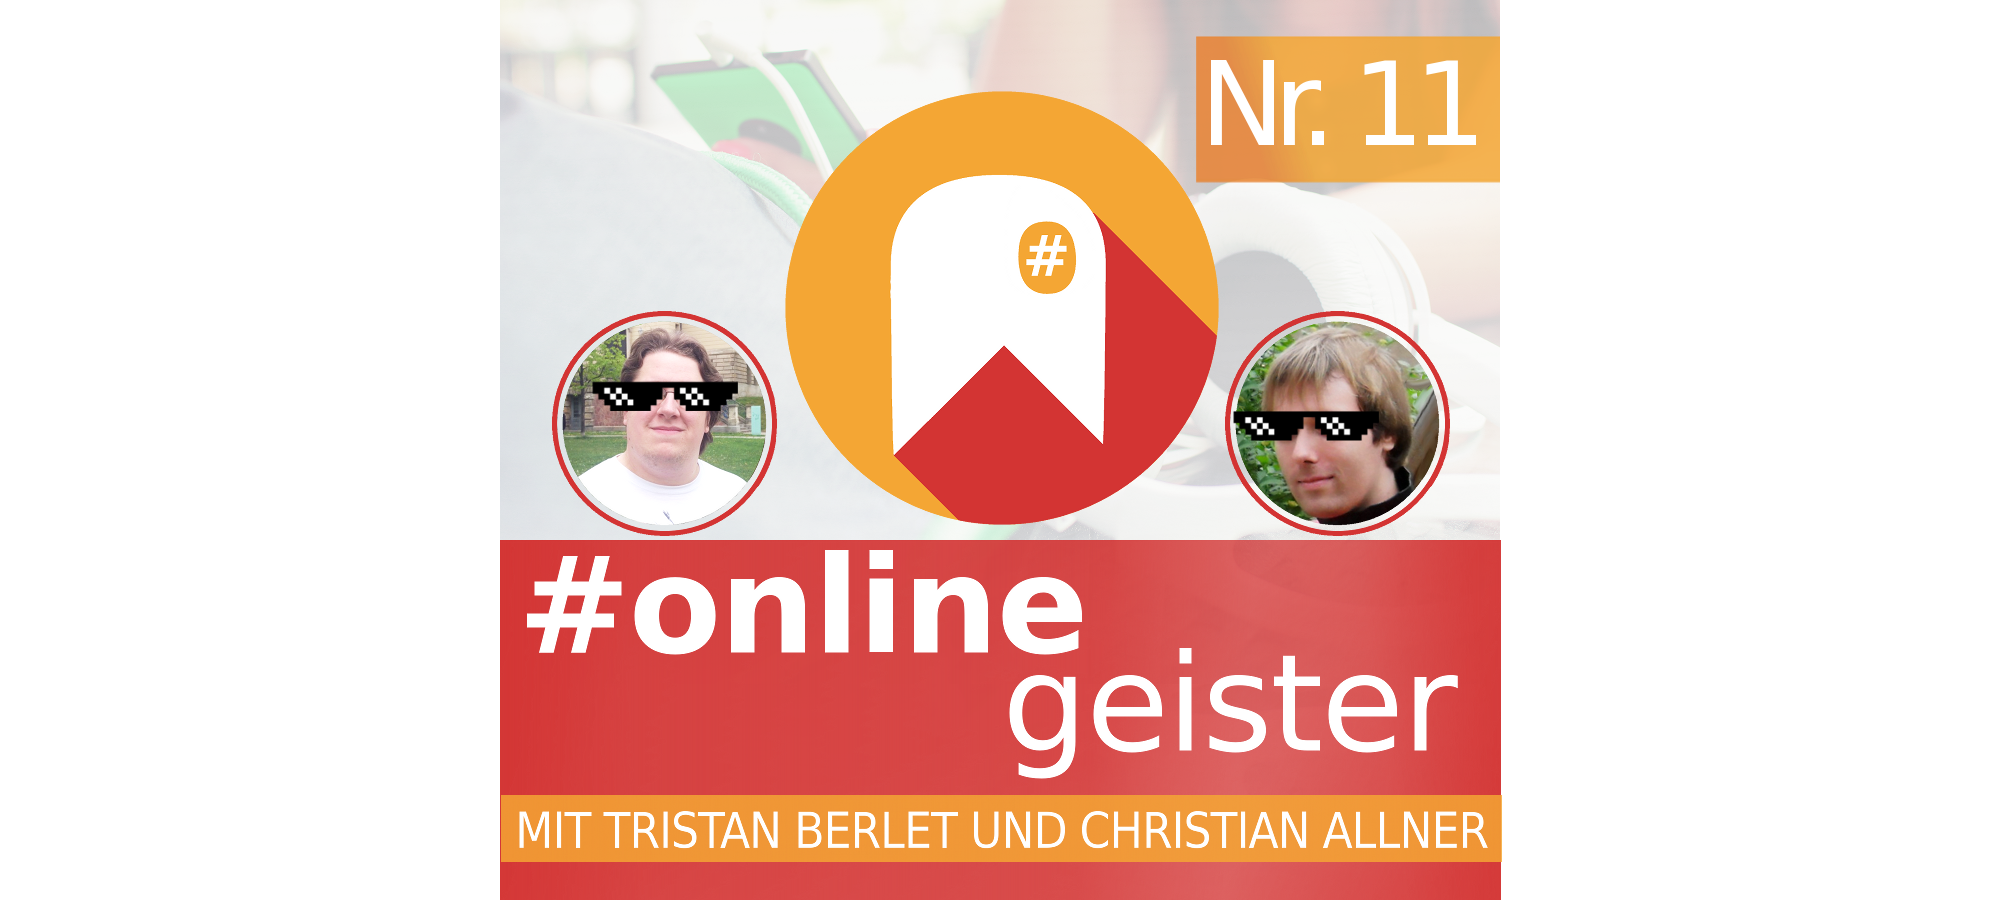 Fake News — #Onlinegeister Nr. 11 (Netzkultur-Podcast)